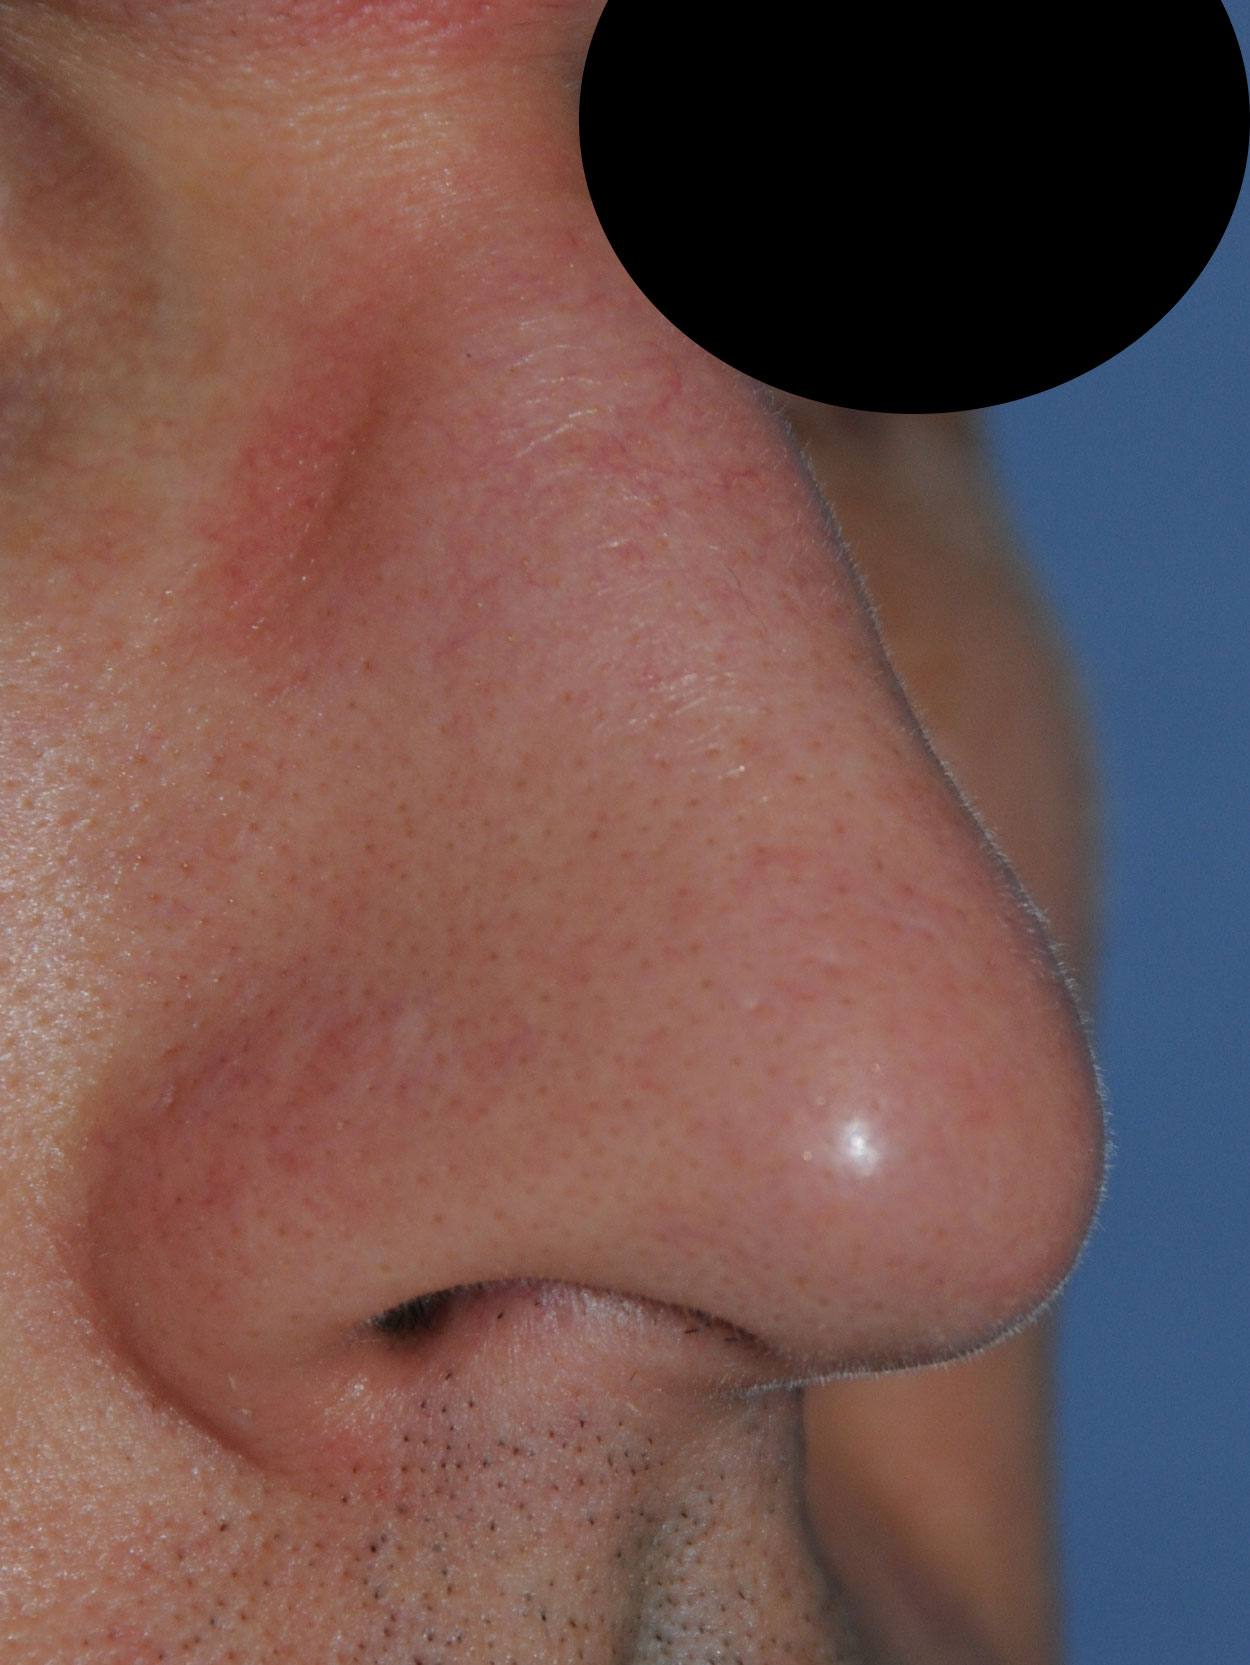 Oblique View After Laser Resurfacing, Dermabrasion to the nose to treat scars, red marks, to improve texture, tone and even the skin appearance for this 40's Caucasian Professional Male from Bellevue, Wa